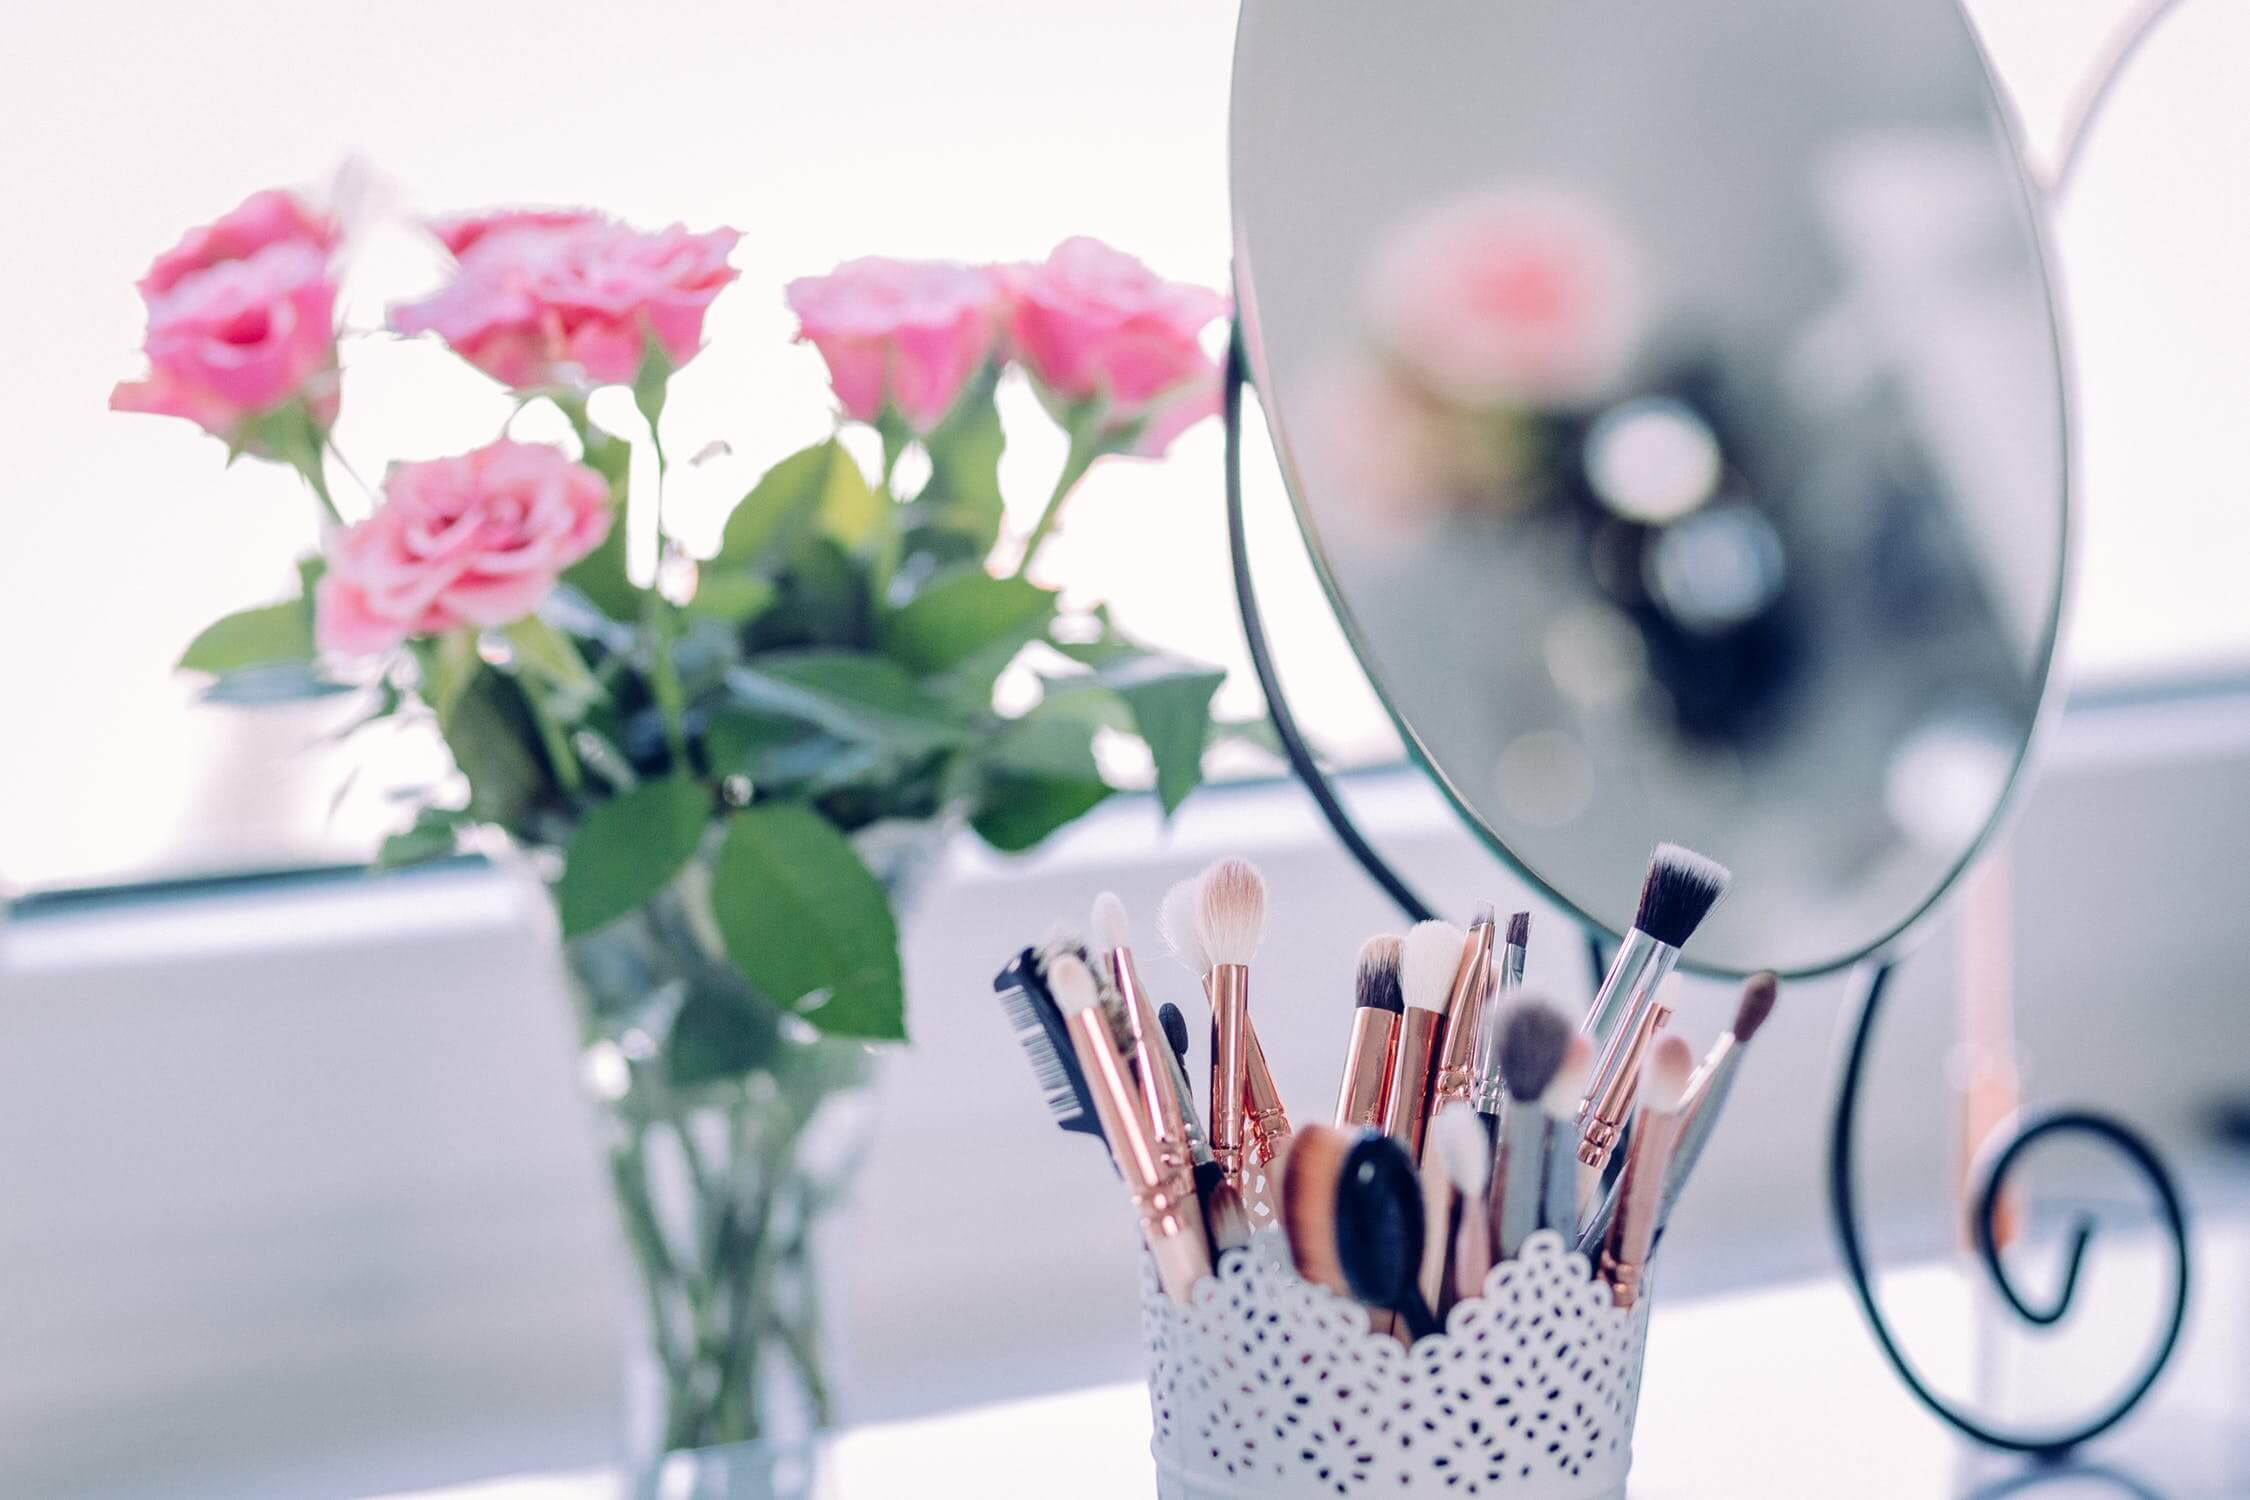 A mirror with makeup brushes in front of it. Many women with skin issues, like wrinkles, will wear makeup to hide them.